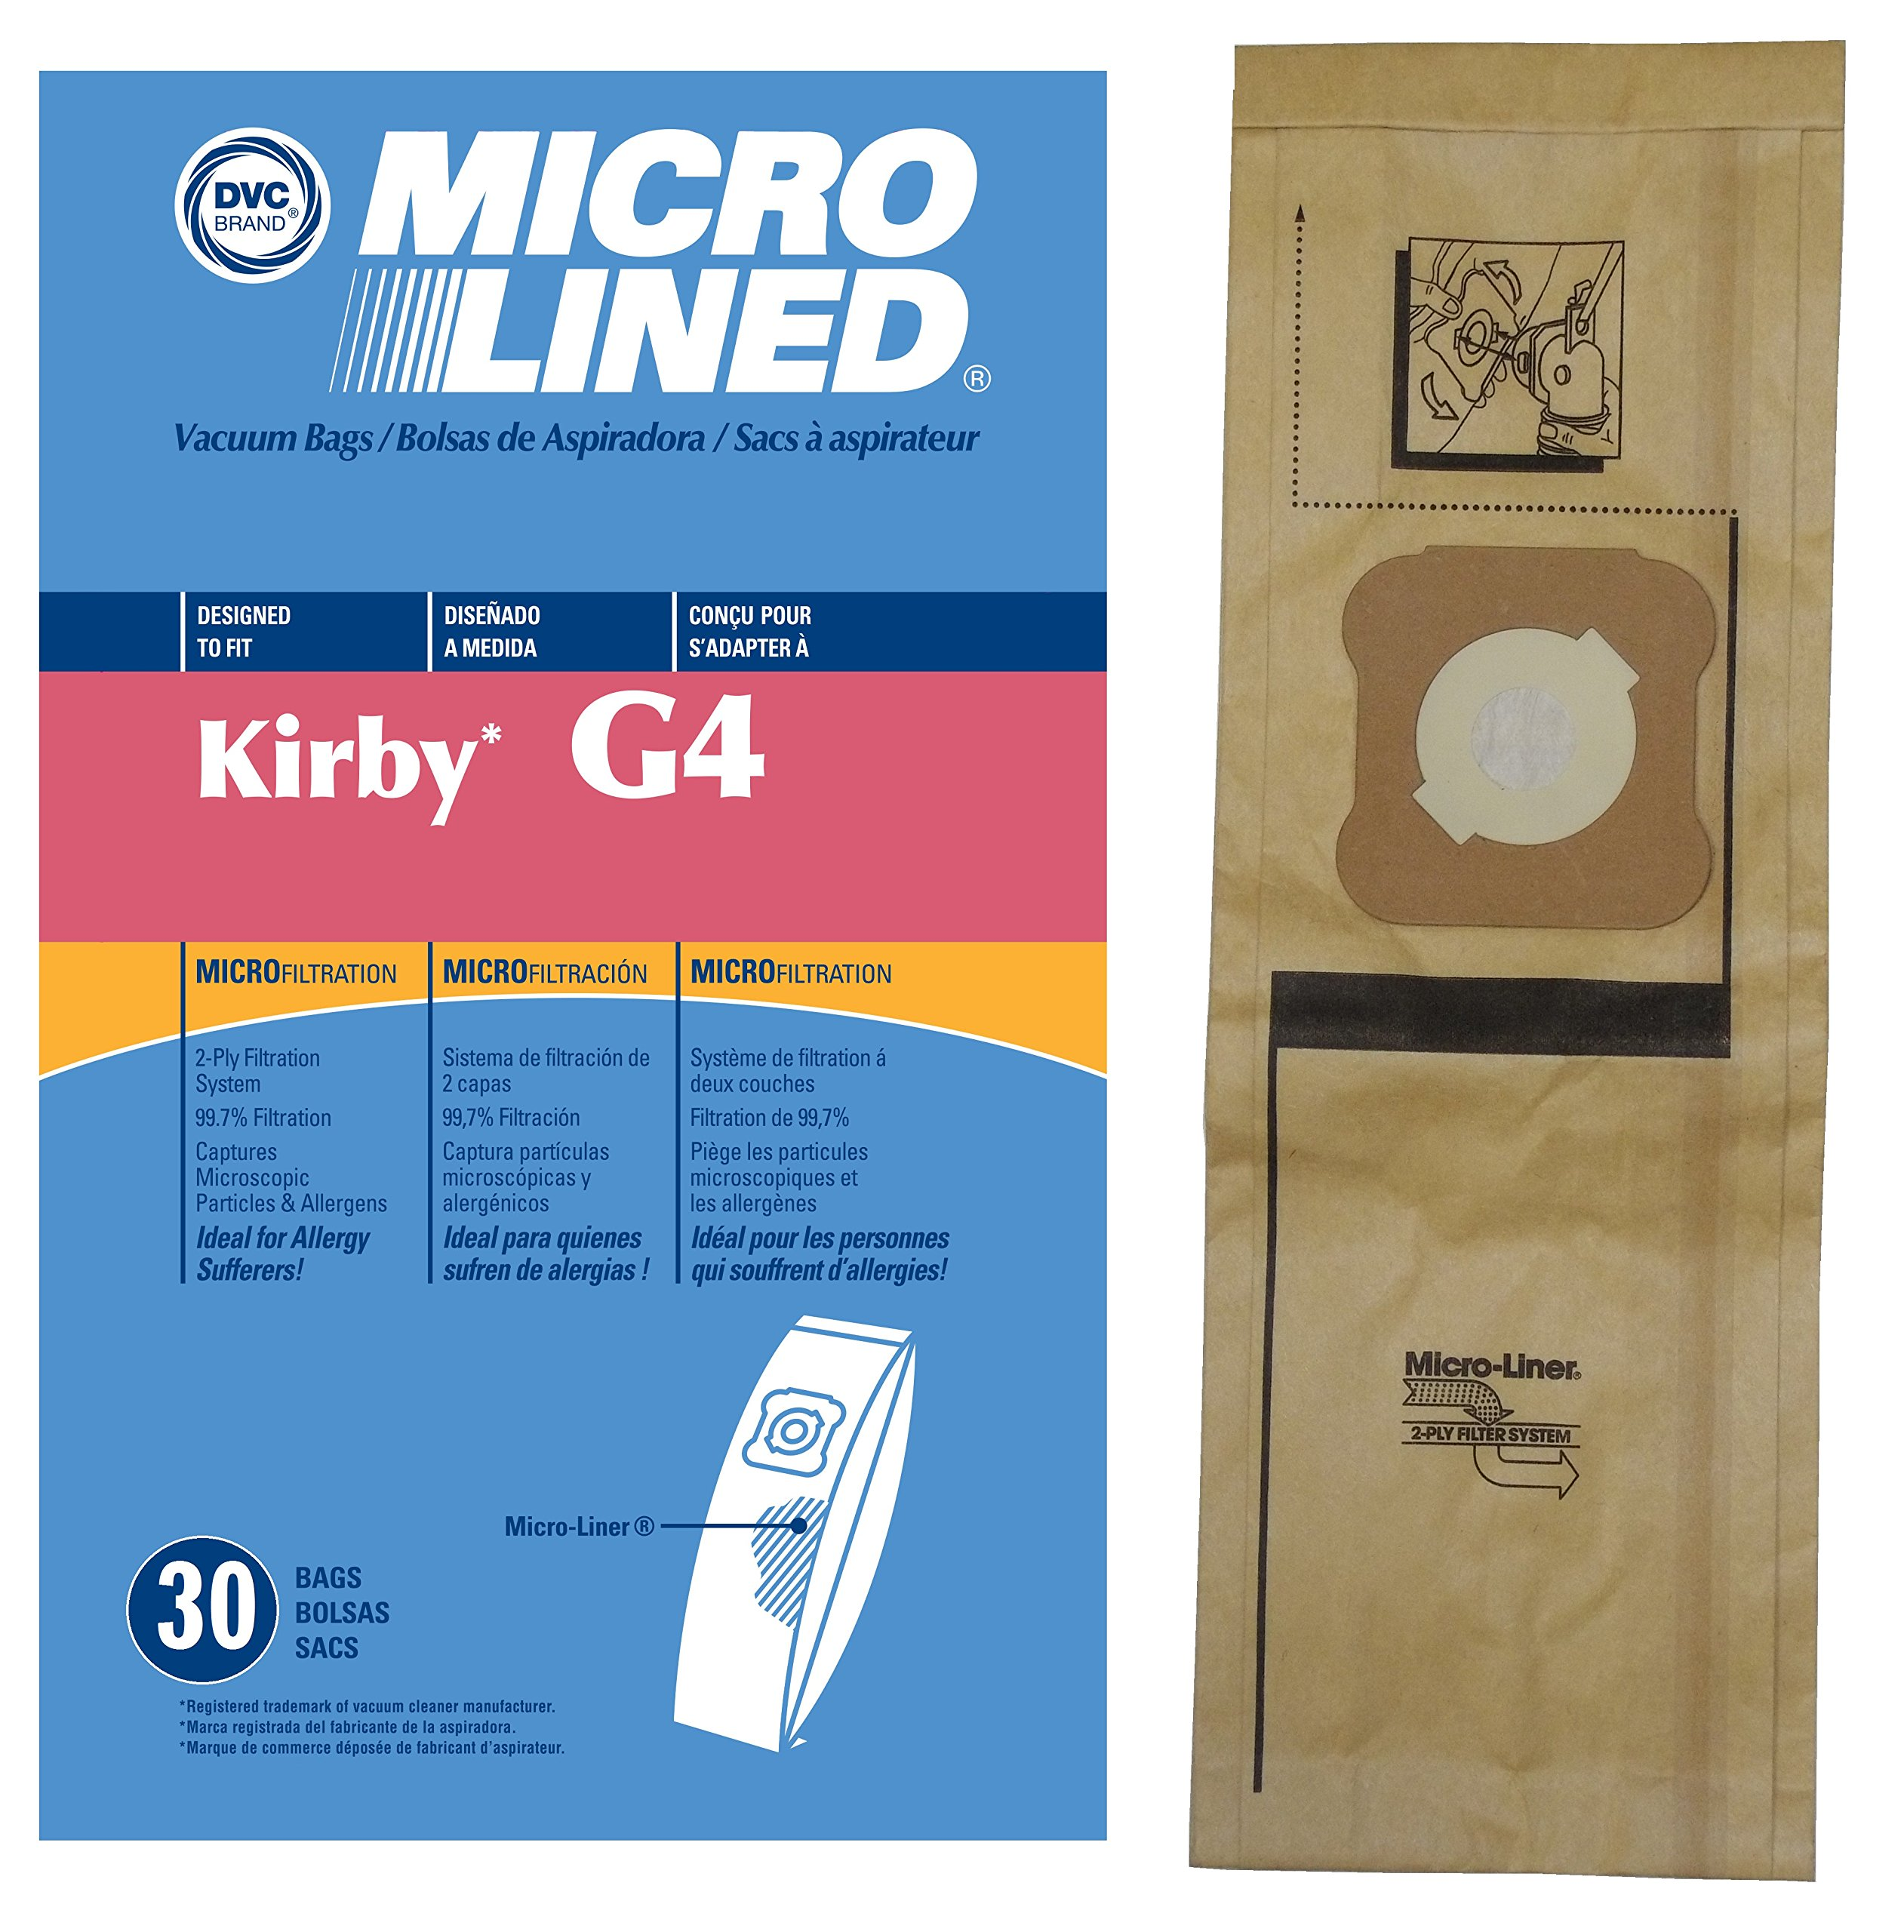 30 Kirby Generation Series DVC Micro-Lined Allergen Filtration Upright Bags, 30 Bags.